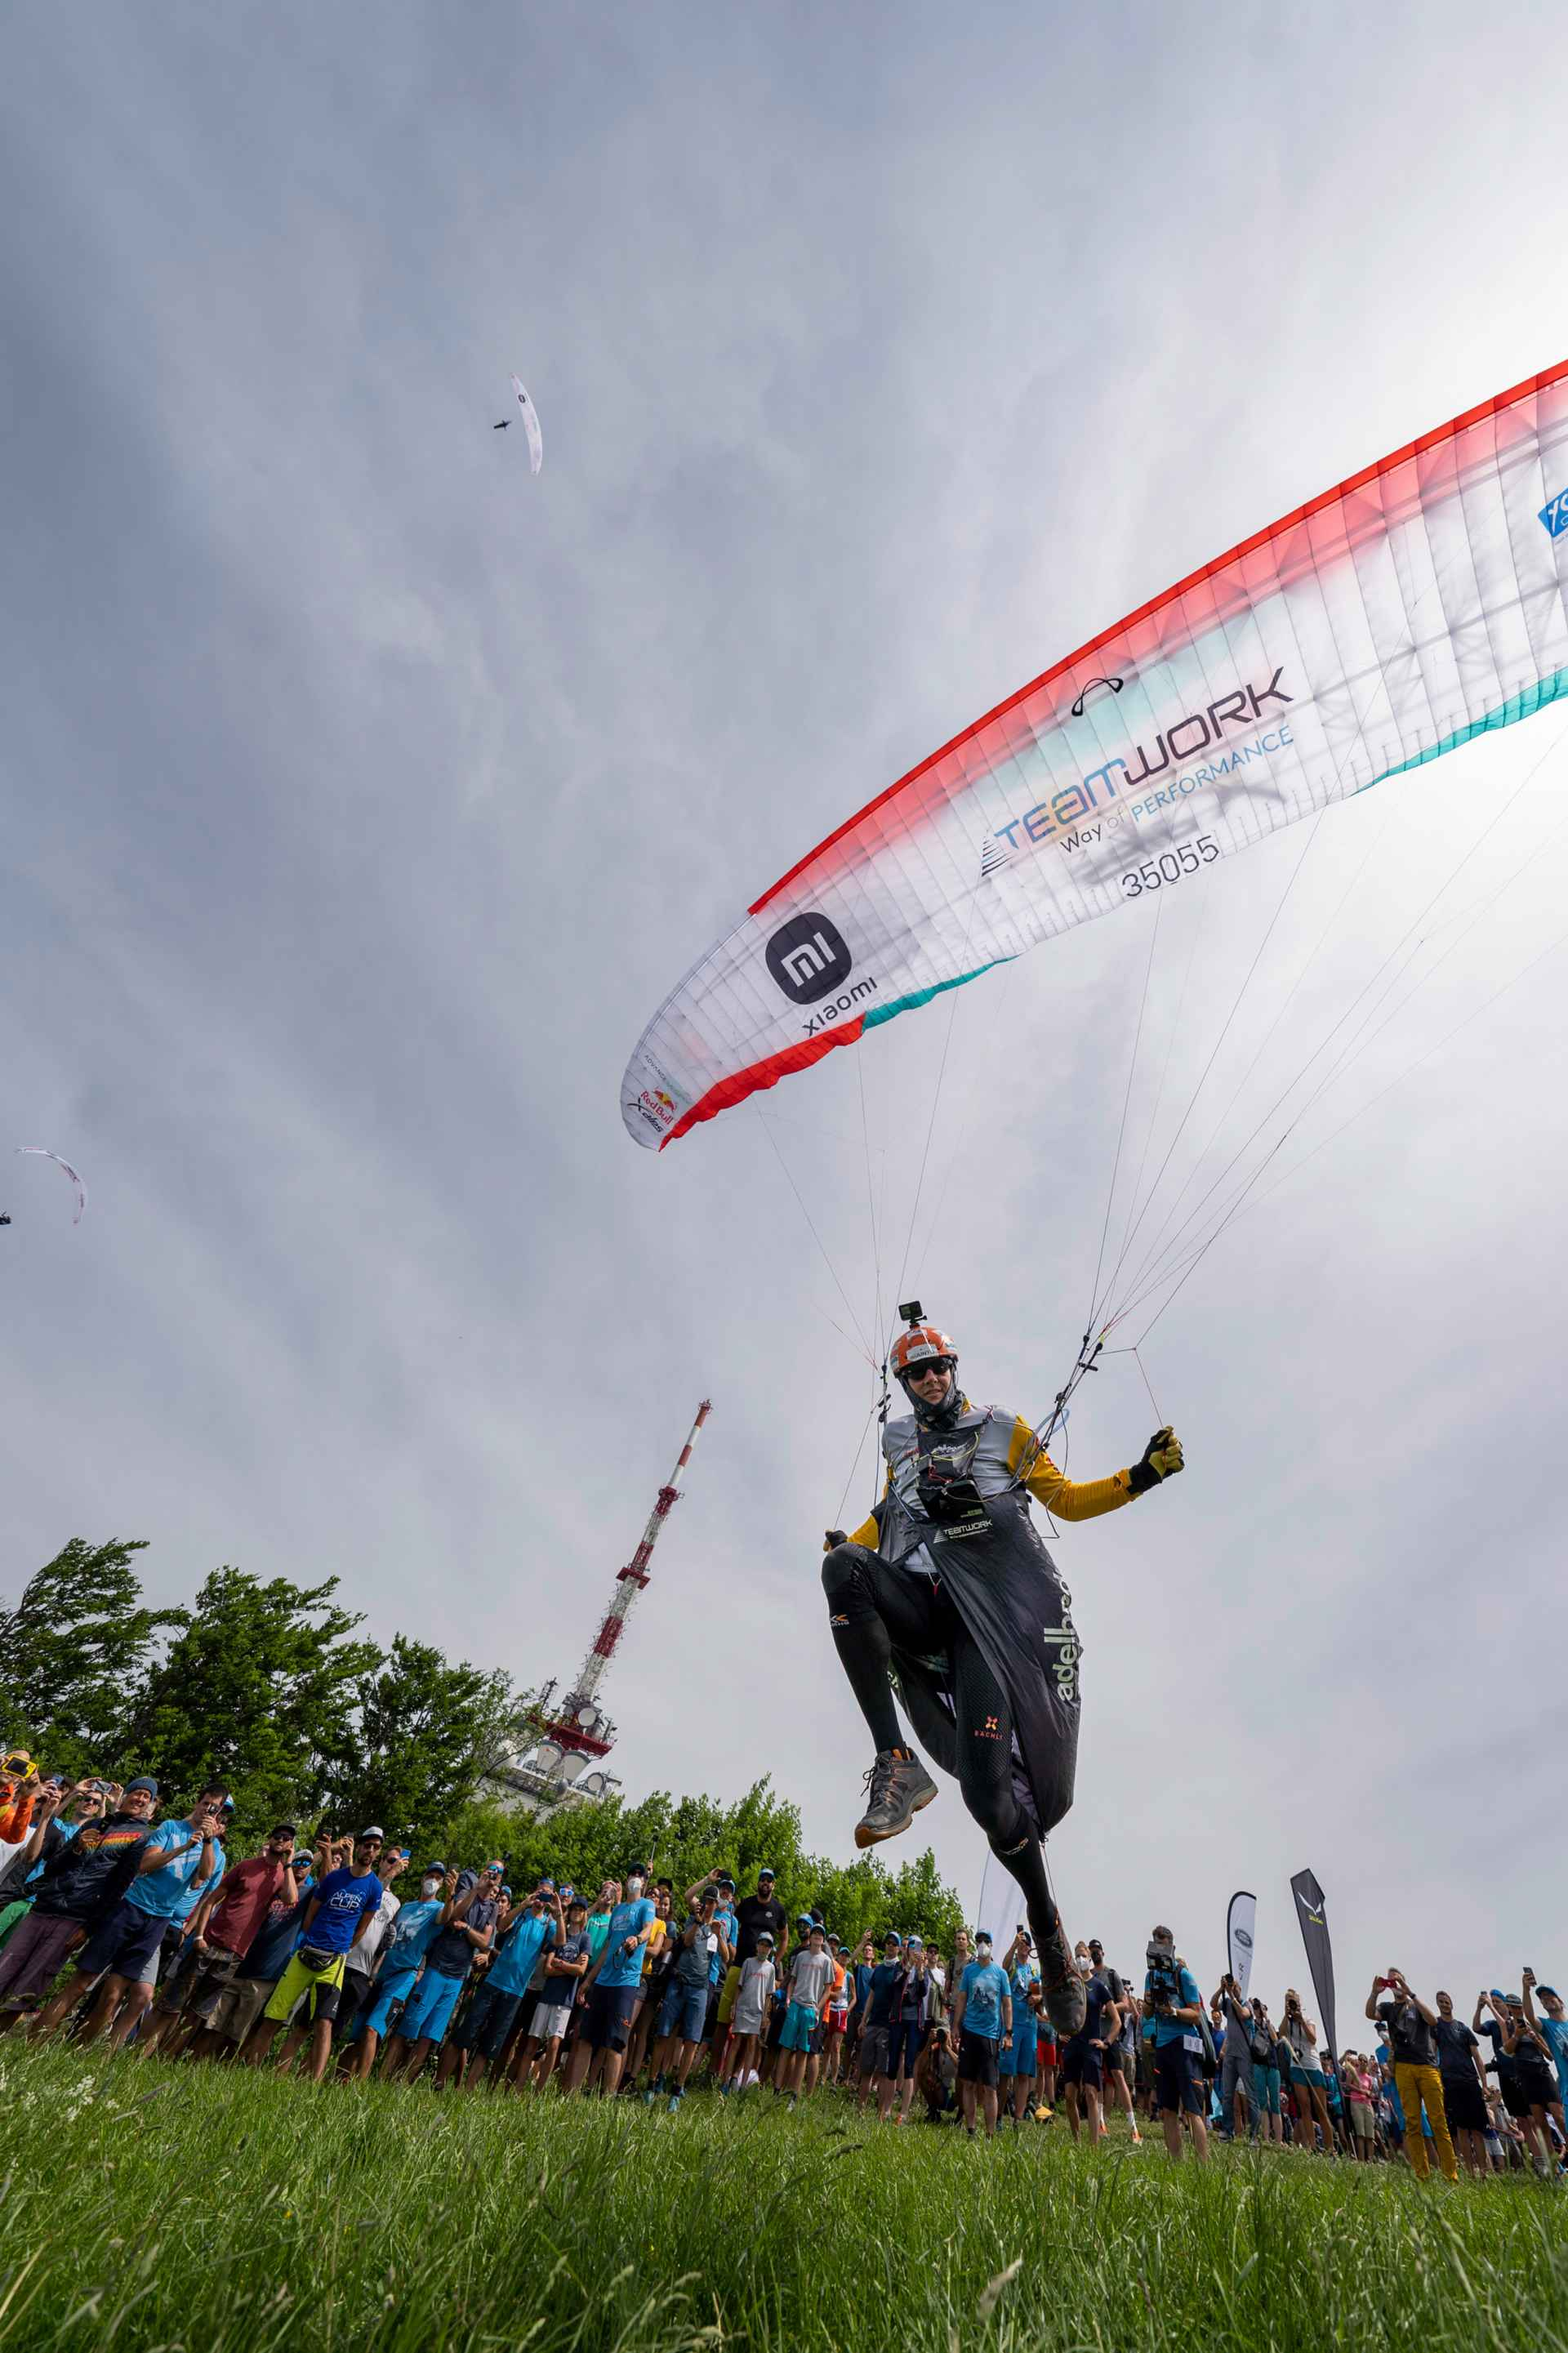 SUI1 performs during the Red Bull X-Alps in Salzburg, Austria on June 20, 2021.